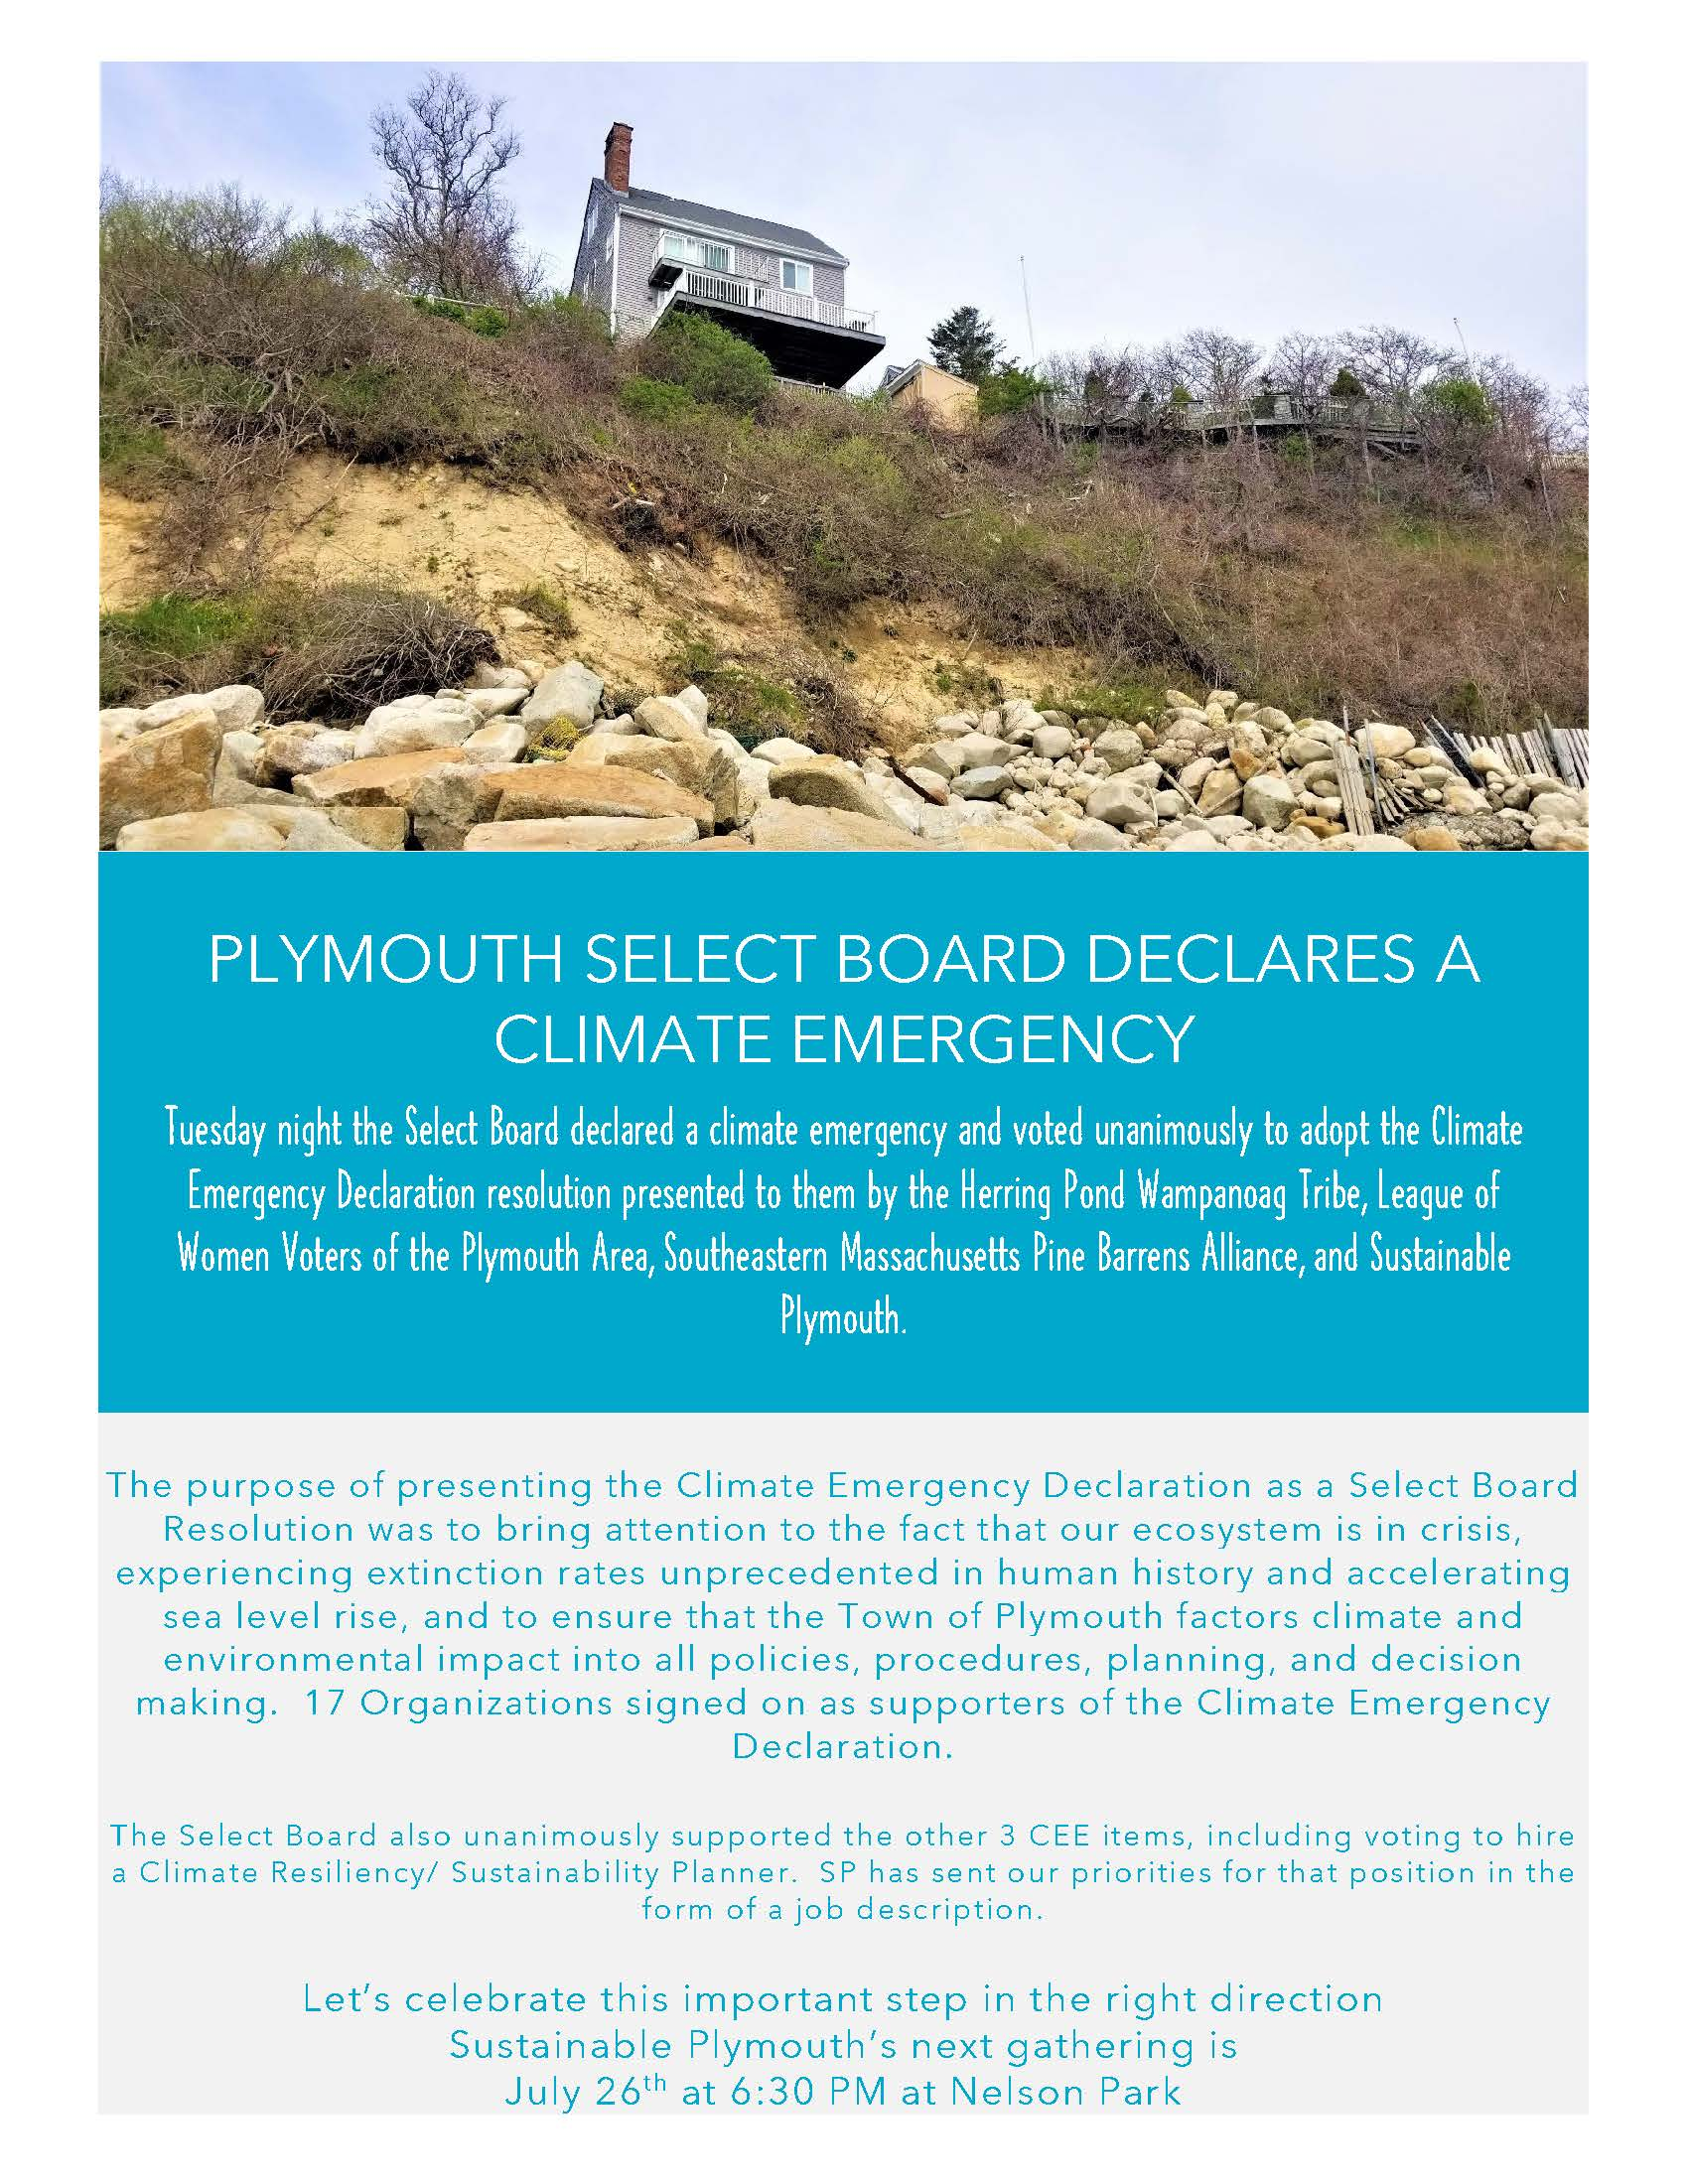 Plymouth Select Board Declares a Climate Emergency